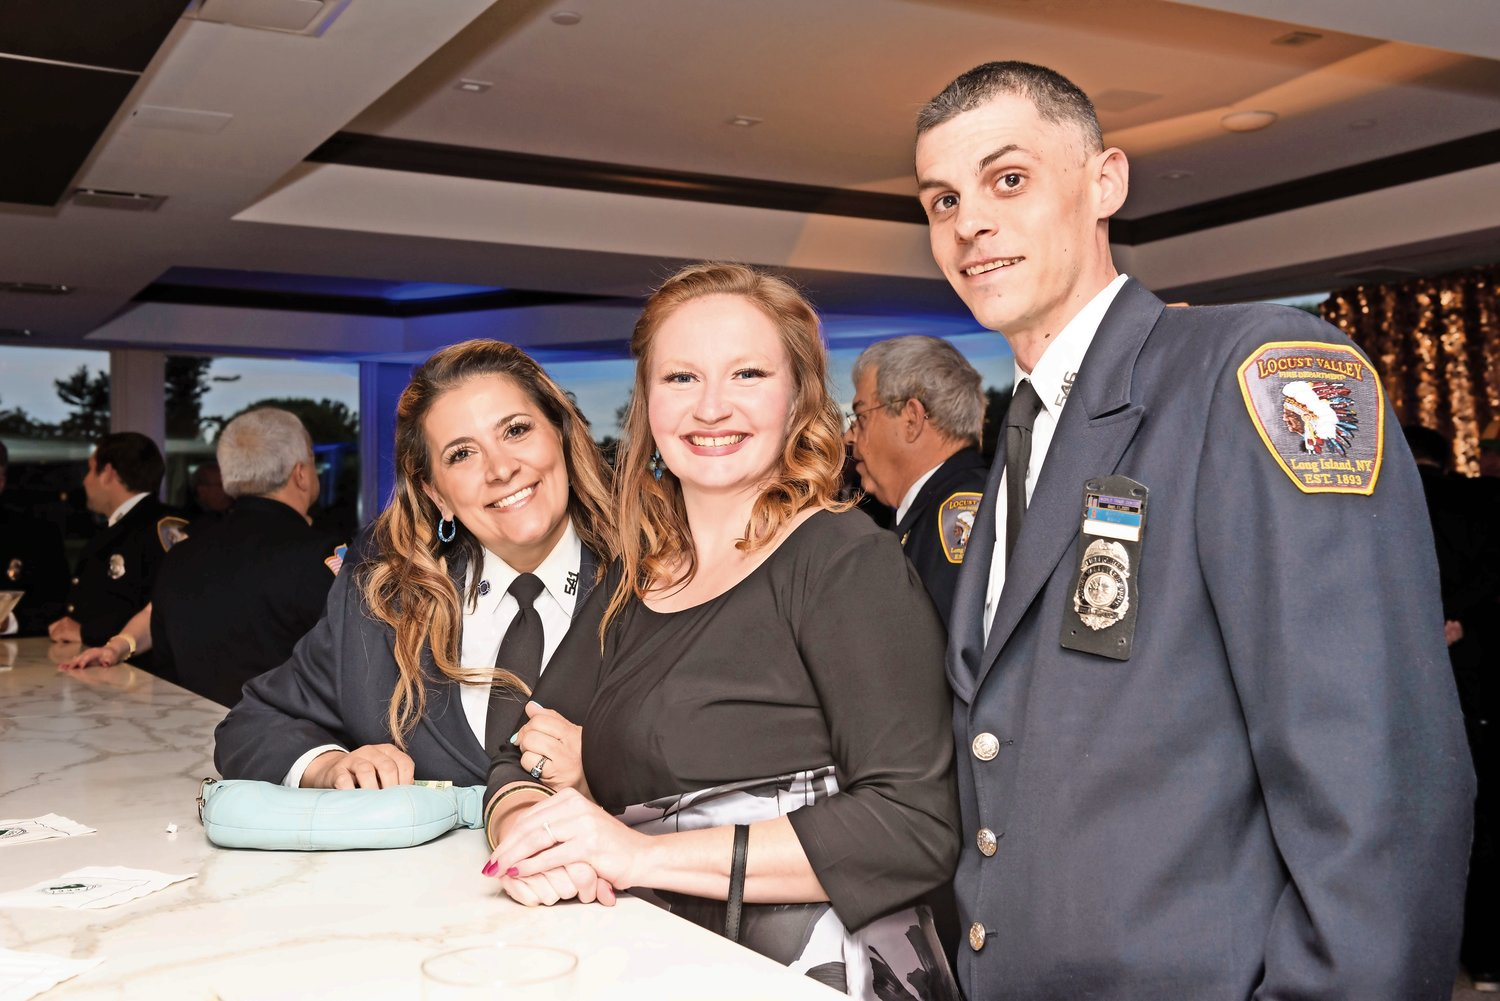 EMT Lisa Constantin, left, Kelly Moore and Sean Coanpet cozied up to the bar.